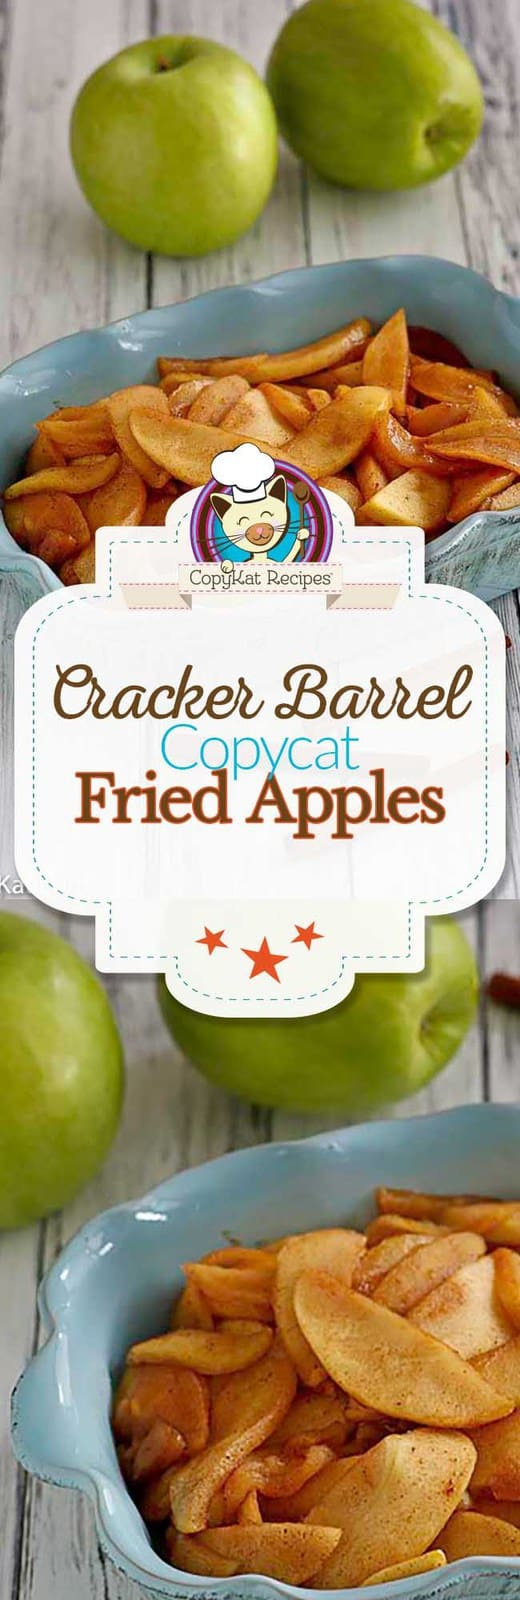 Recreate the best copycat Cracker Barrel Fried Apples at home with this easy copycat recipe.  #crackerbarrel #friedapples #apples #fresh